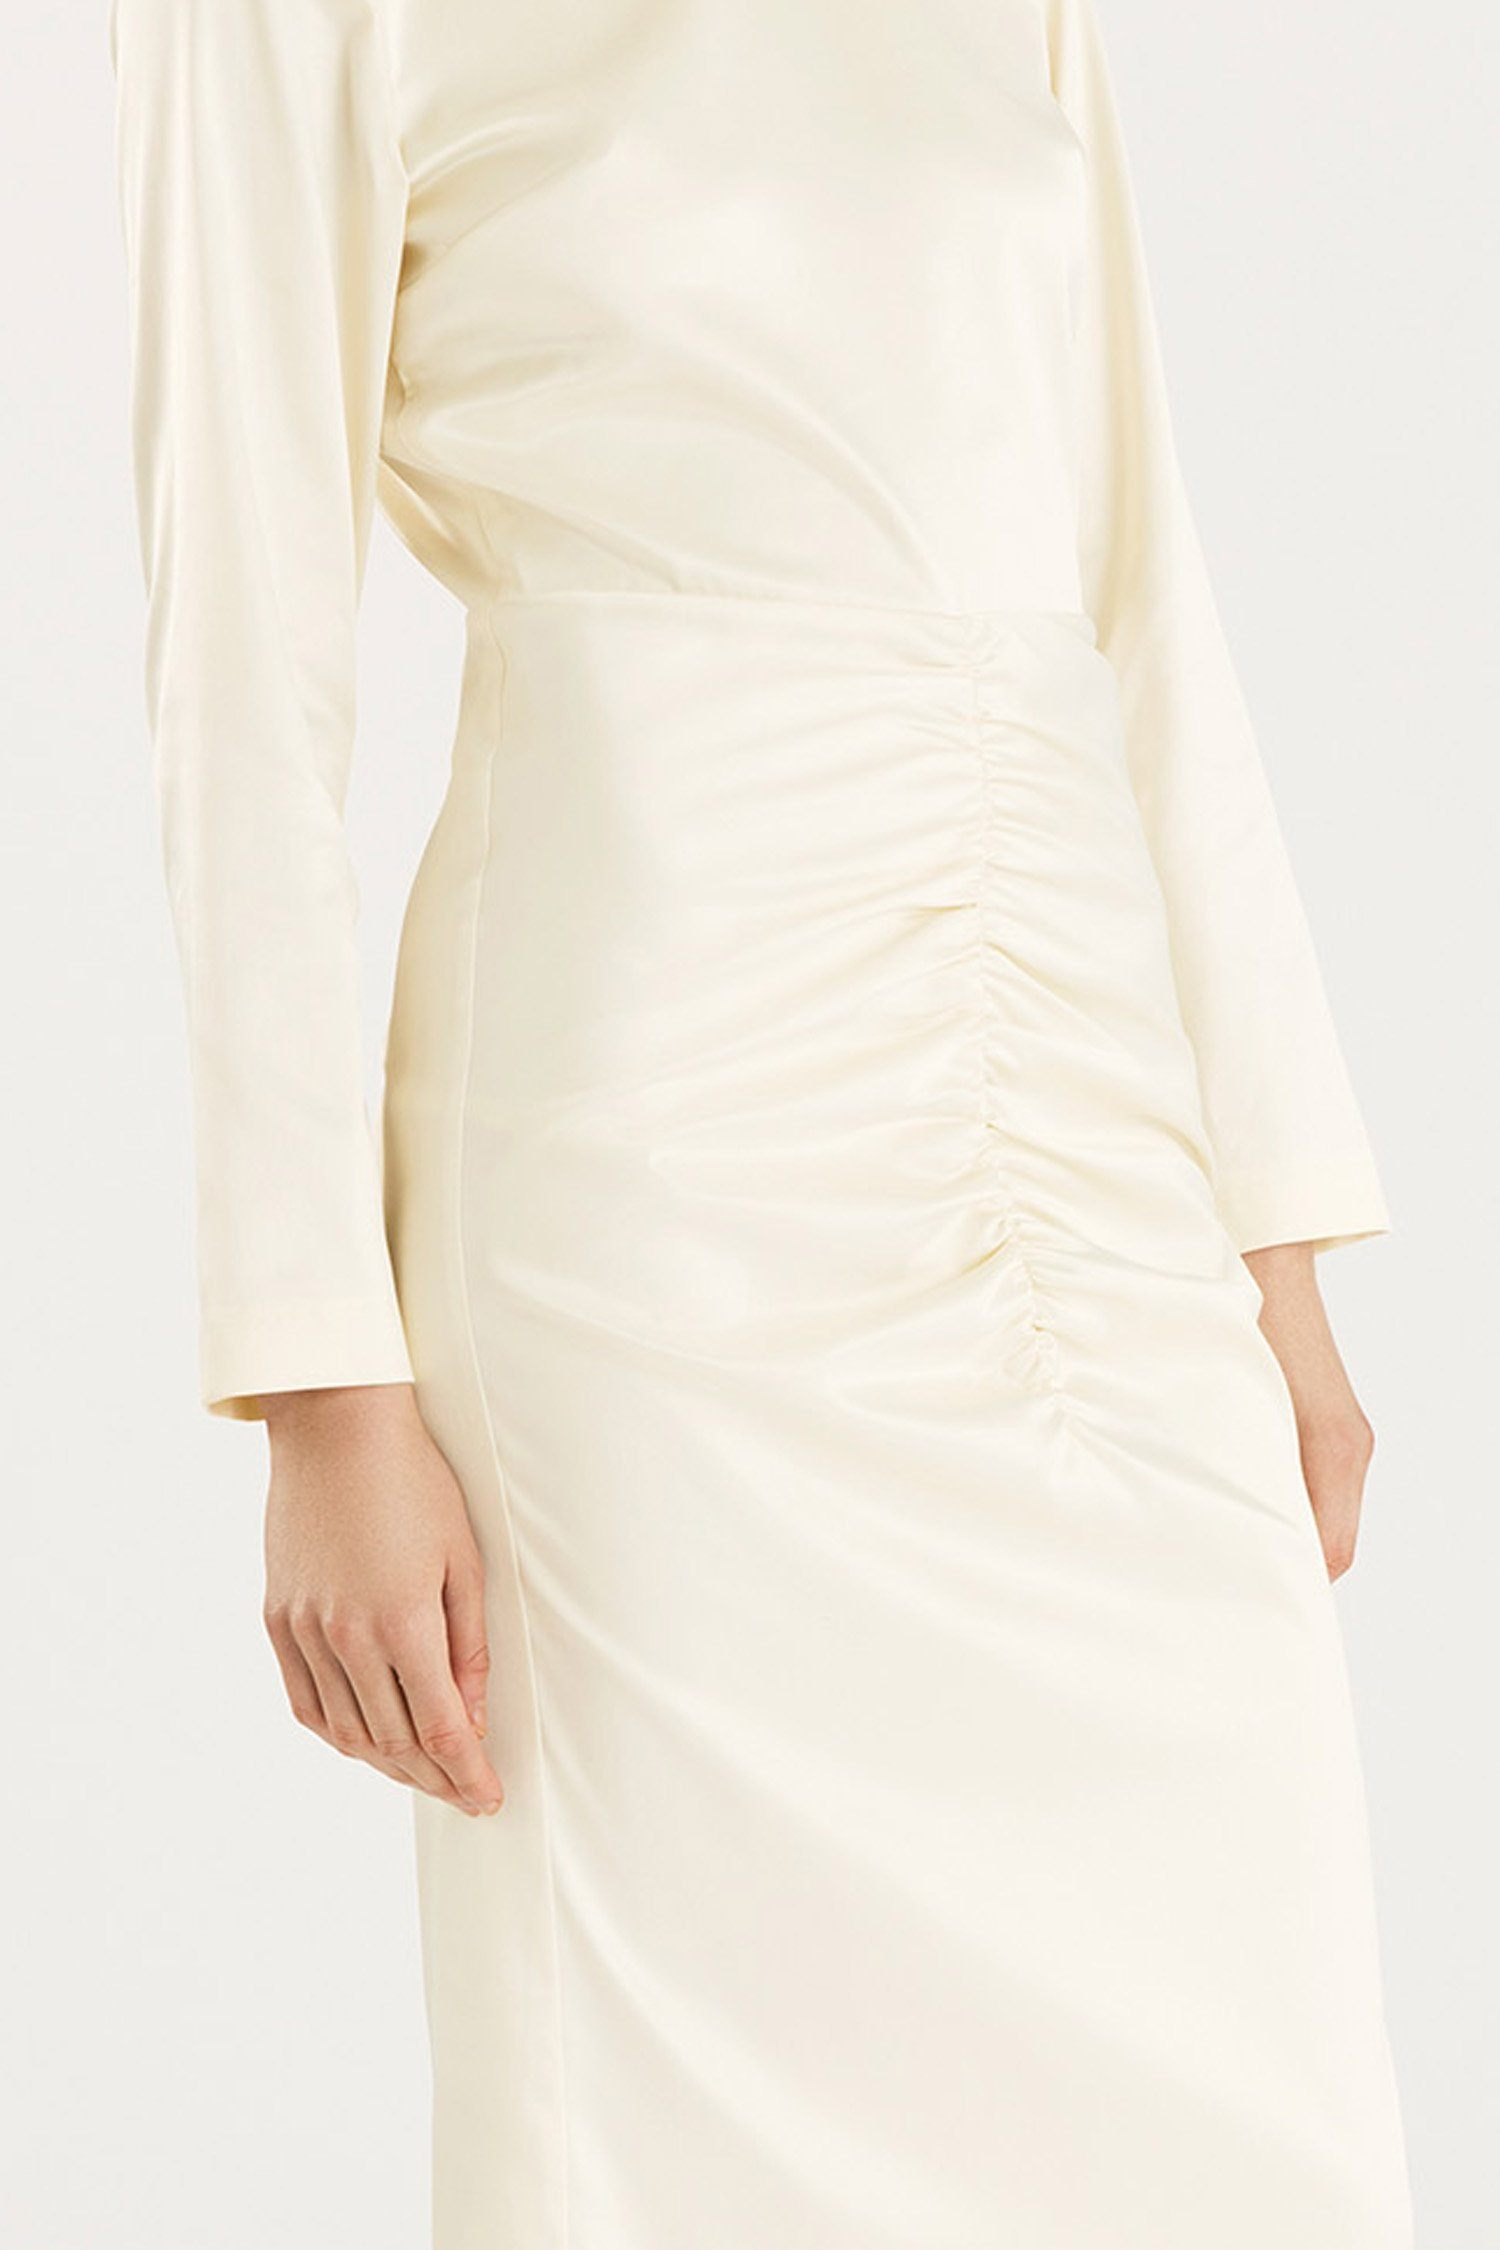 MELANIE DRESS - OFF WHITE Dress Stylein